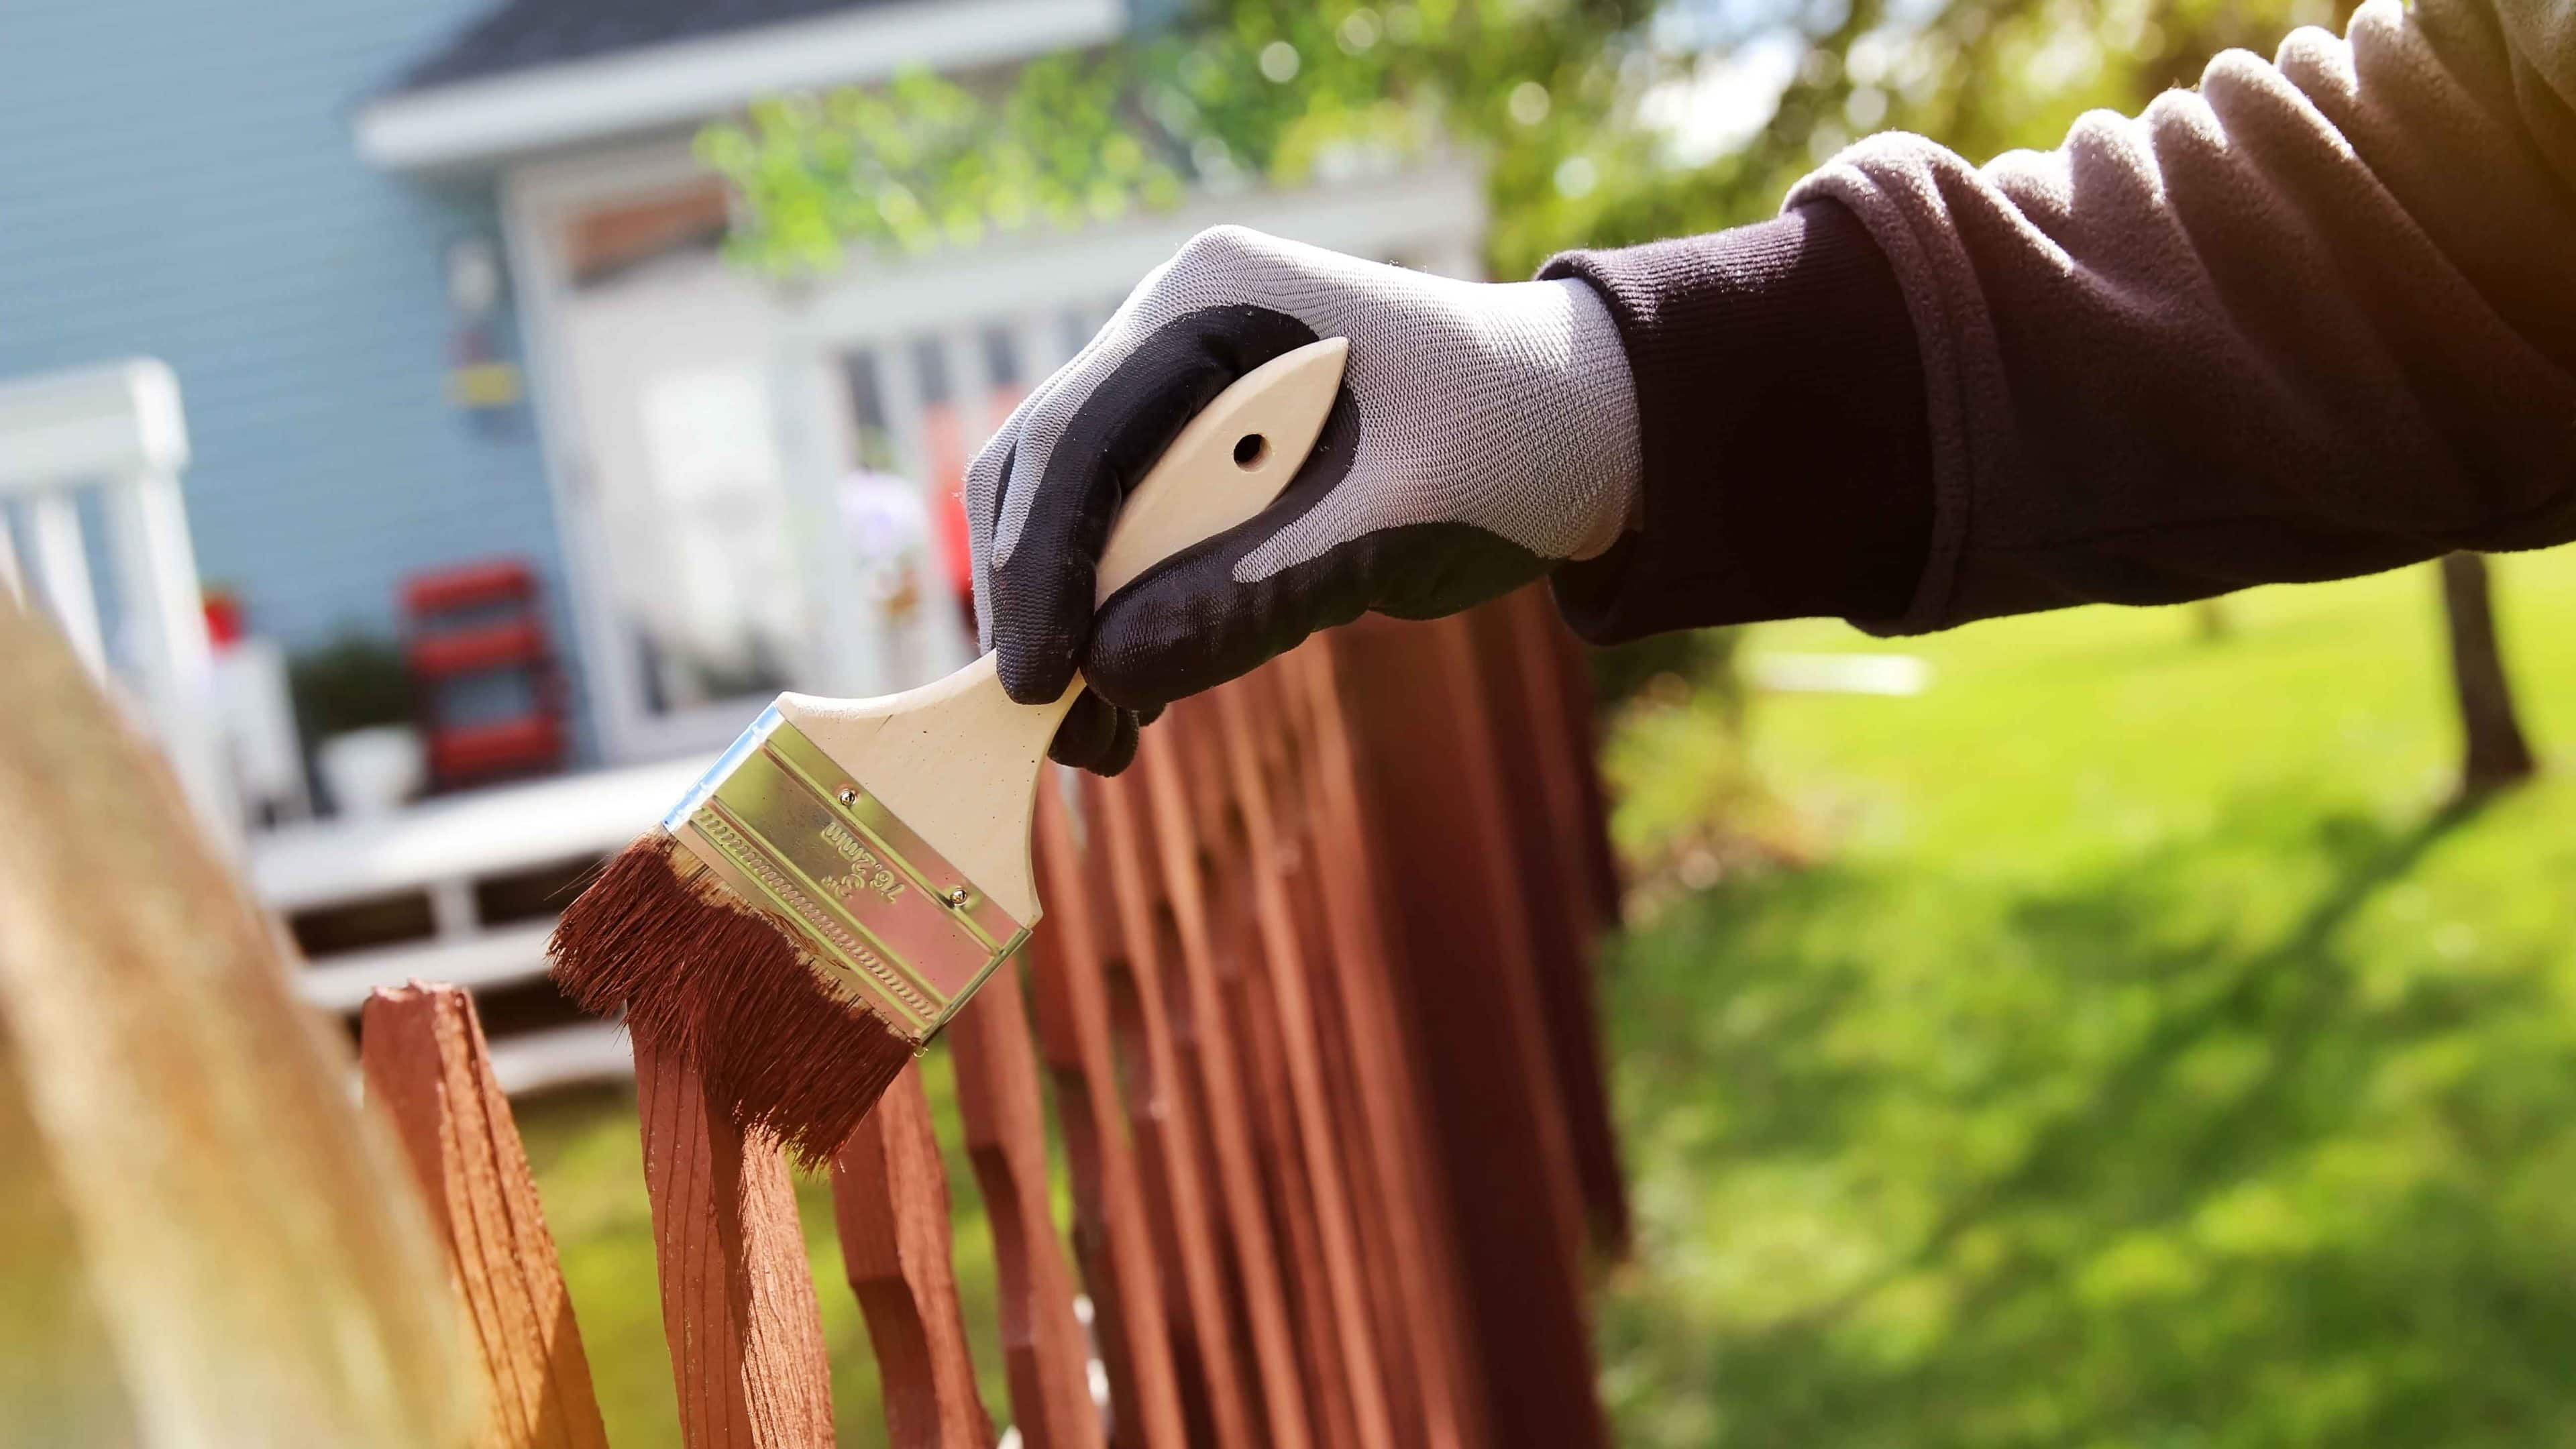 Adding a fresh coat of paint to fences is an easy project to transform your backyard.